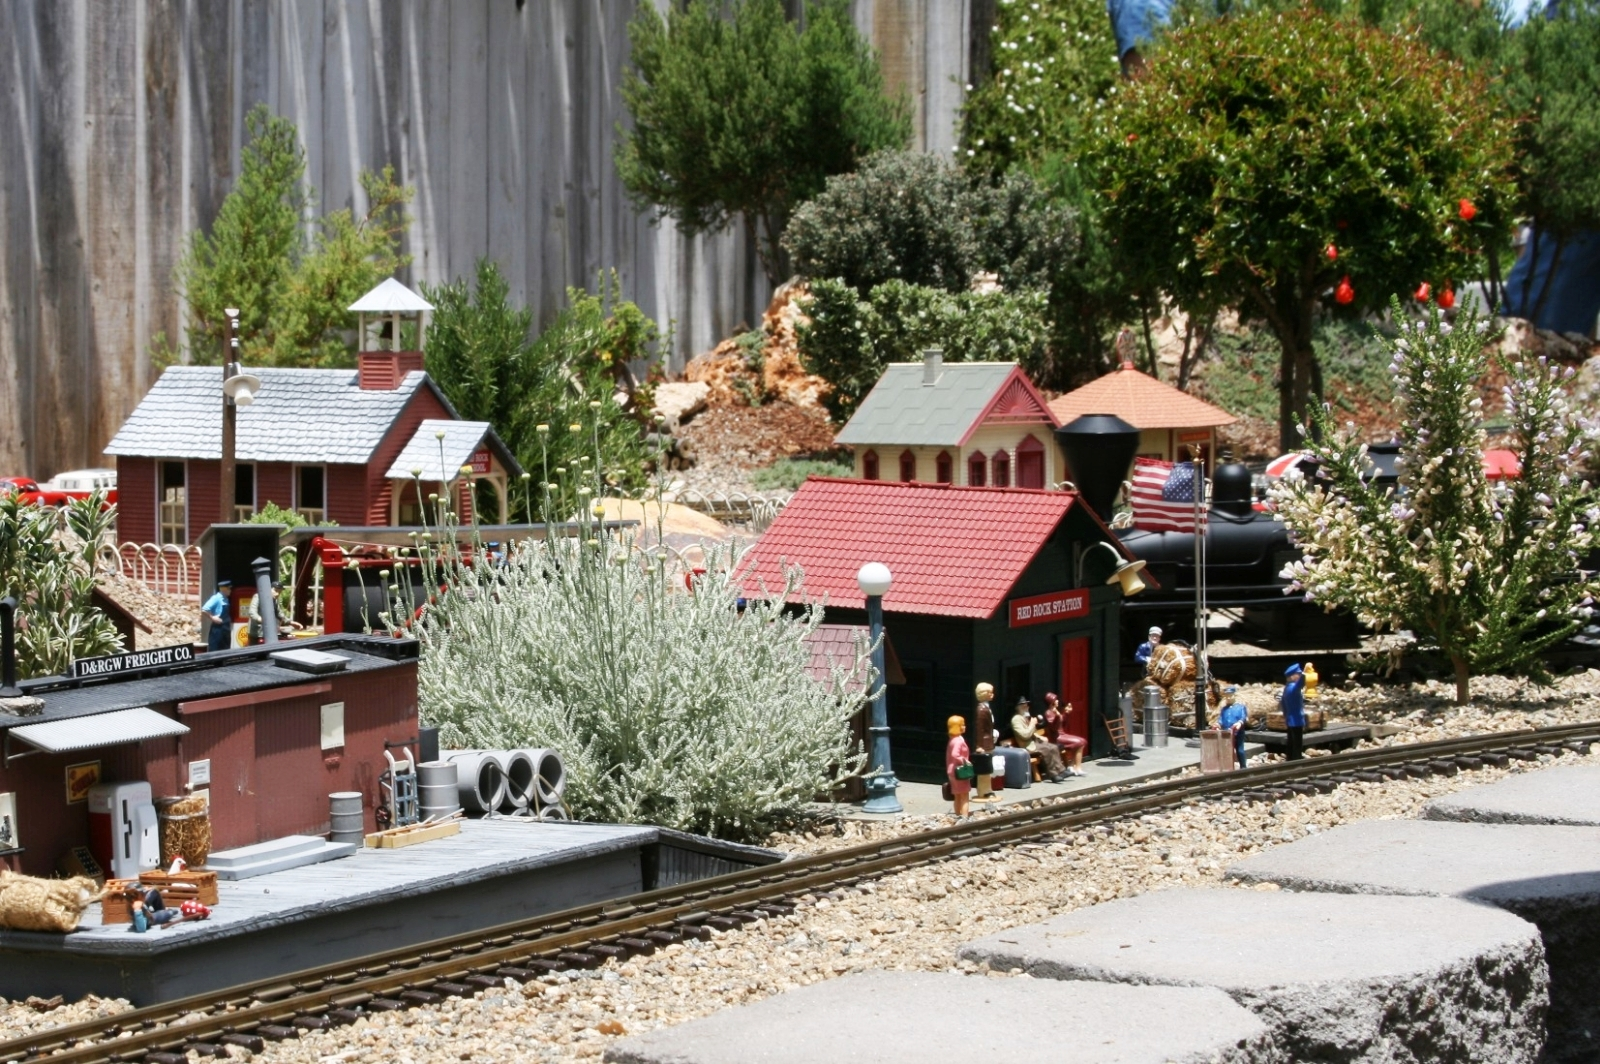 dawes Passengers wait at Red Rock Station amid the beautiful variety of trees and shrubs